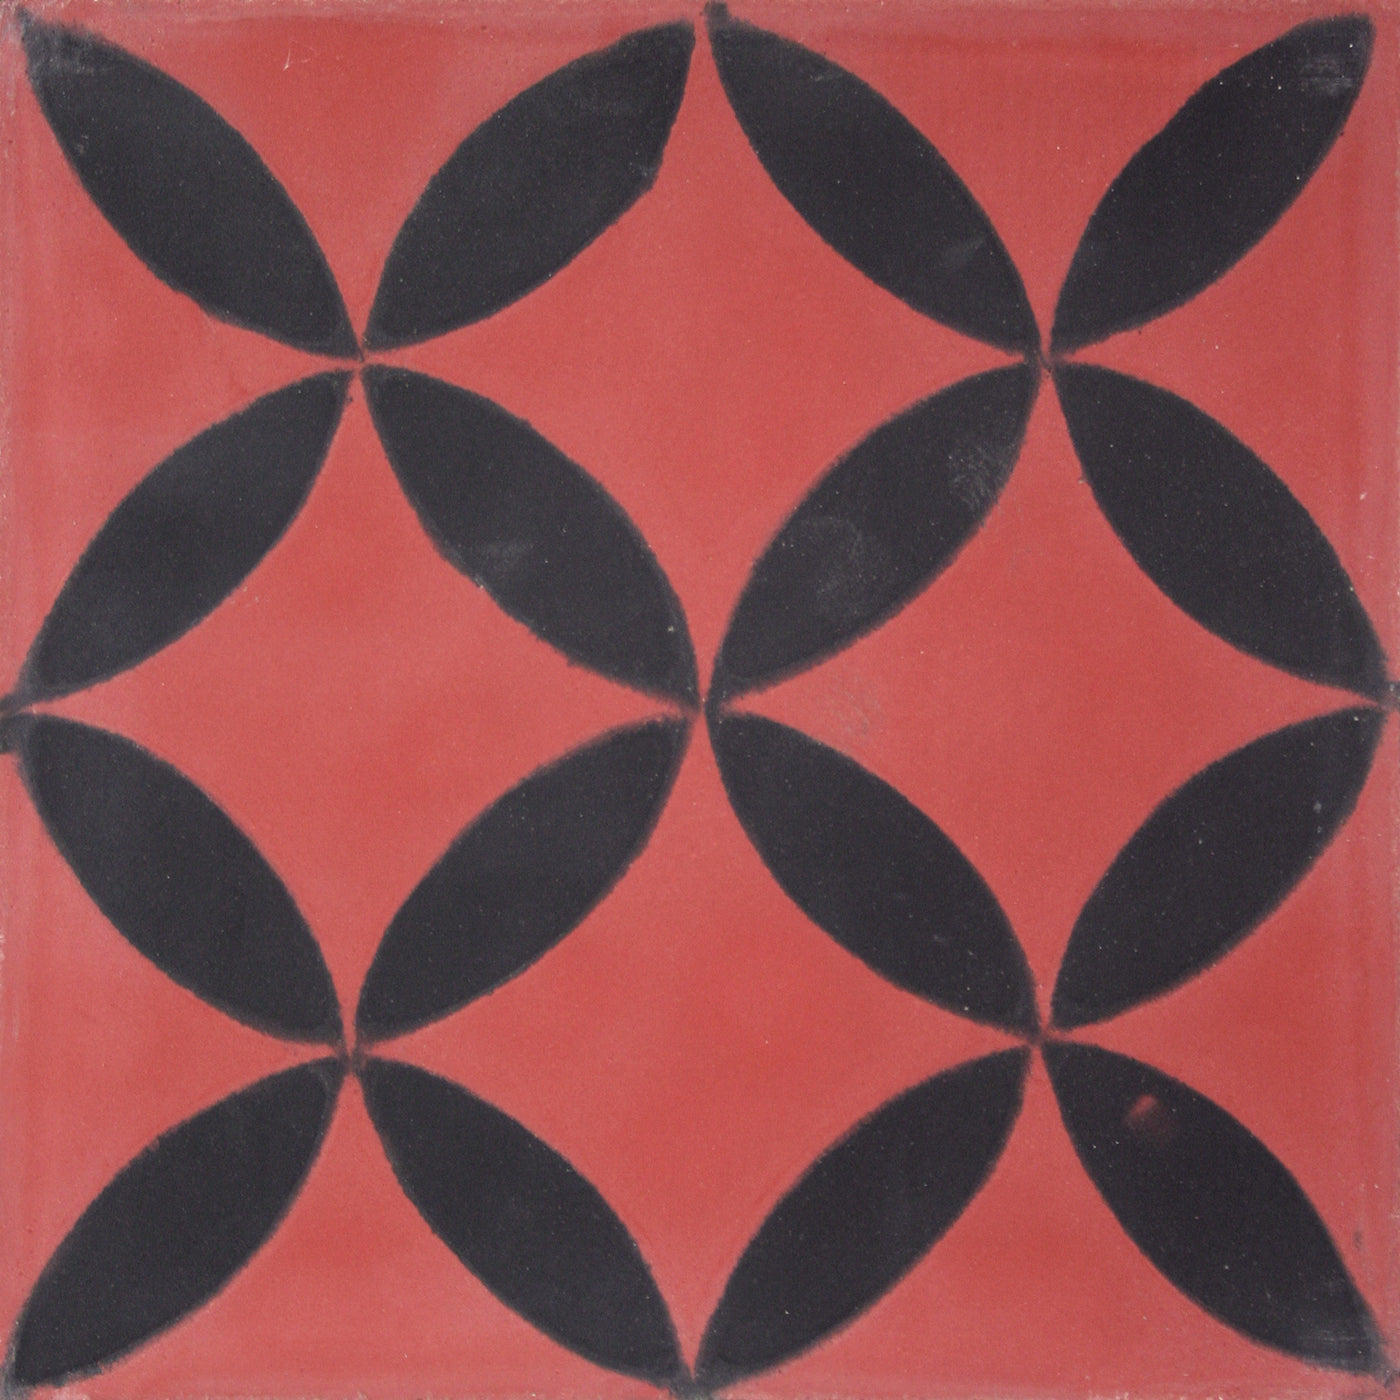 Square cement tile pattern Red/Black